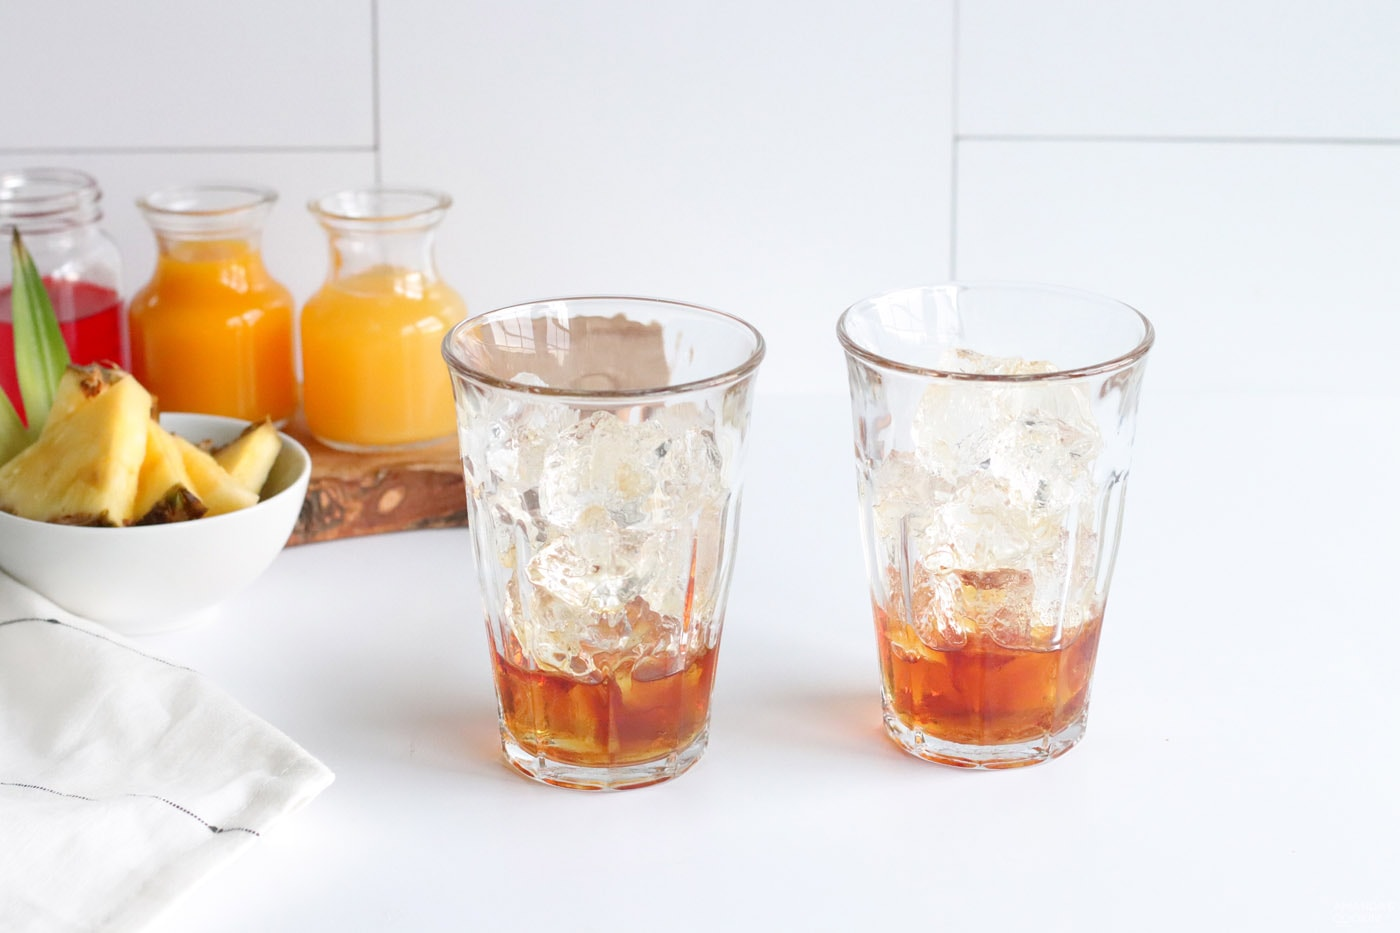 dark rum in a glass of ice